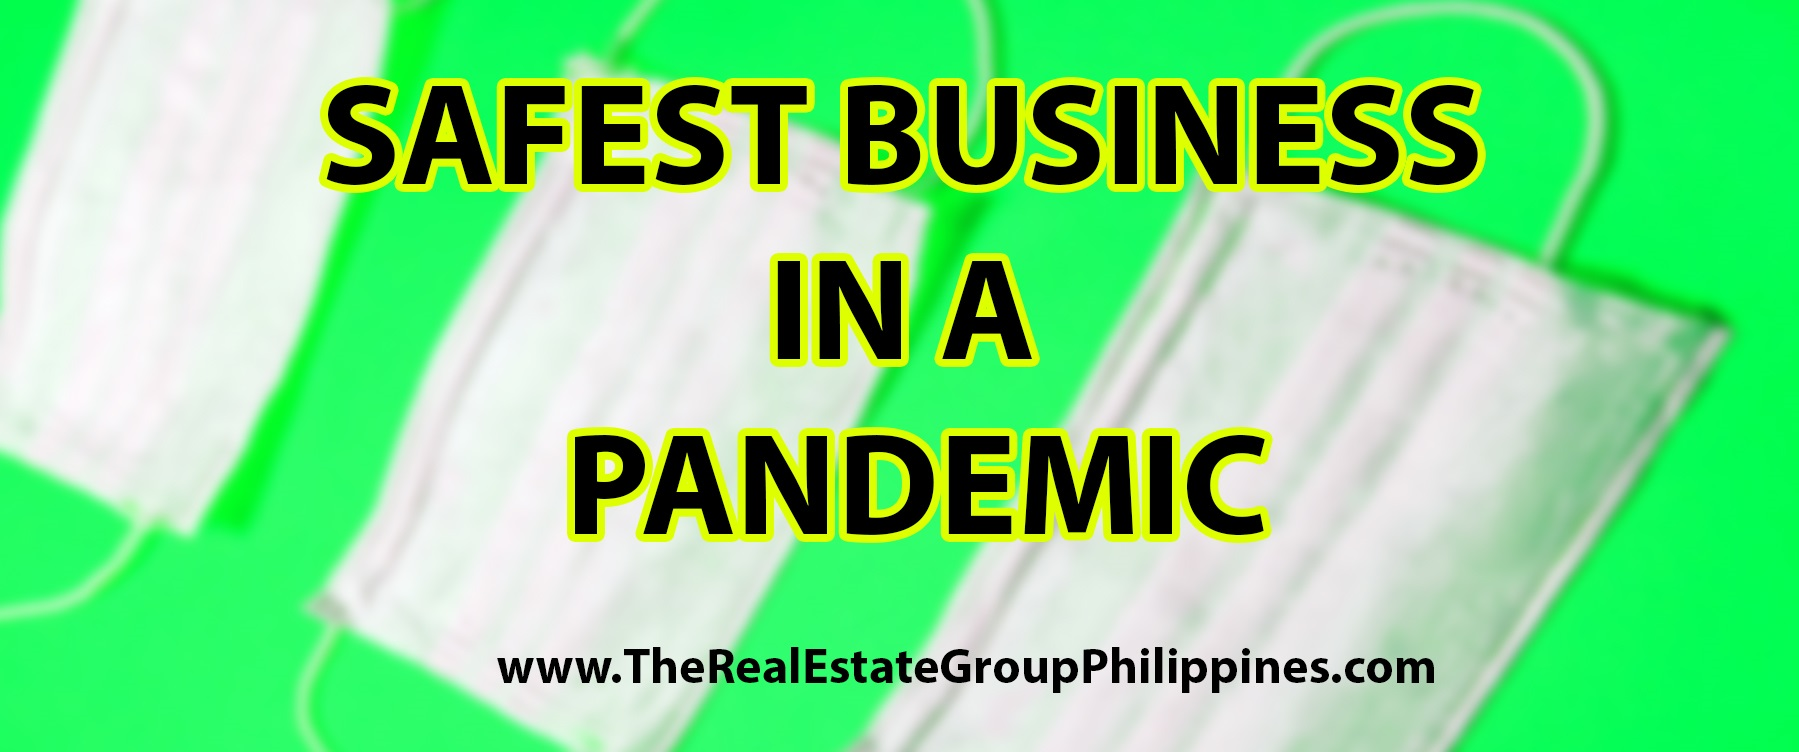 SAFEST BUSINESS IN A PANDEMIC